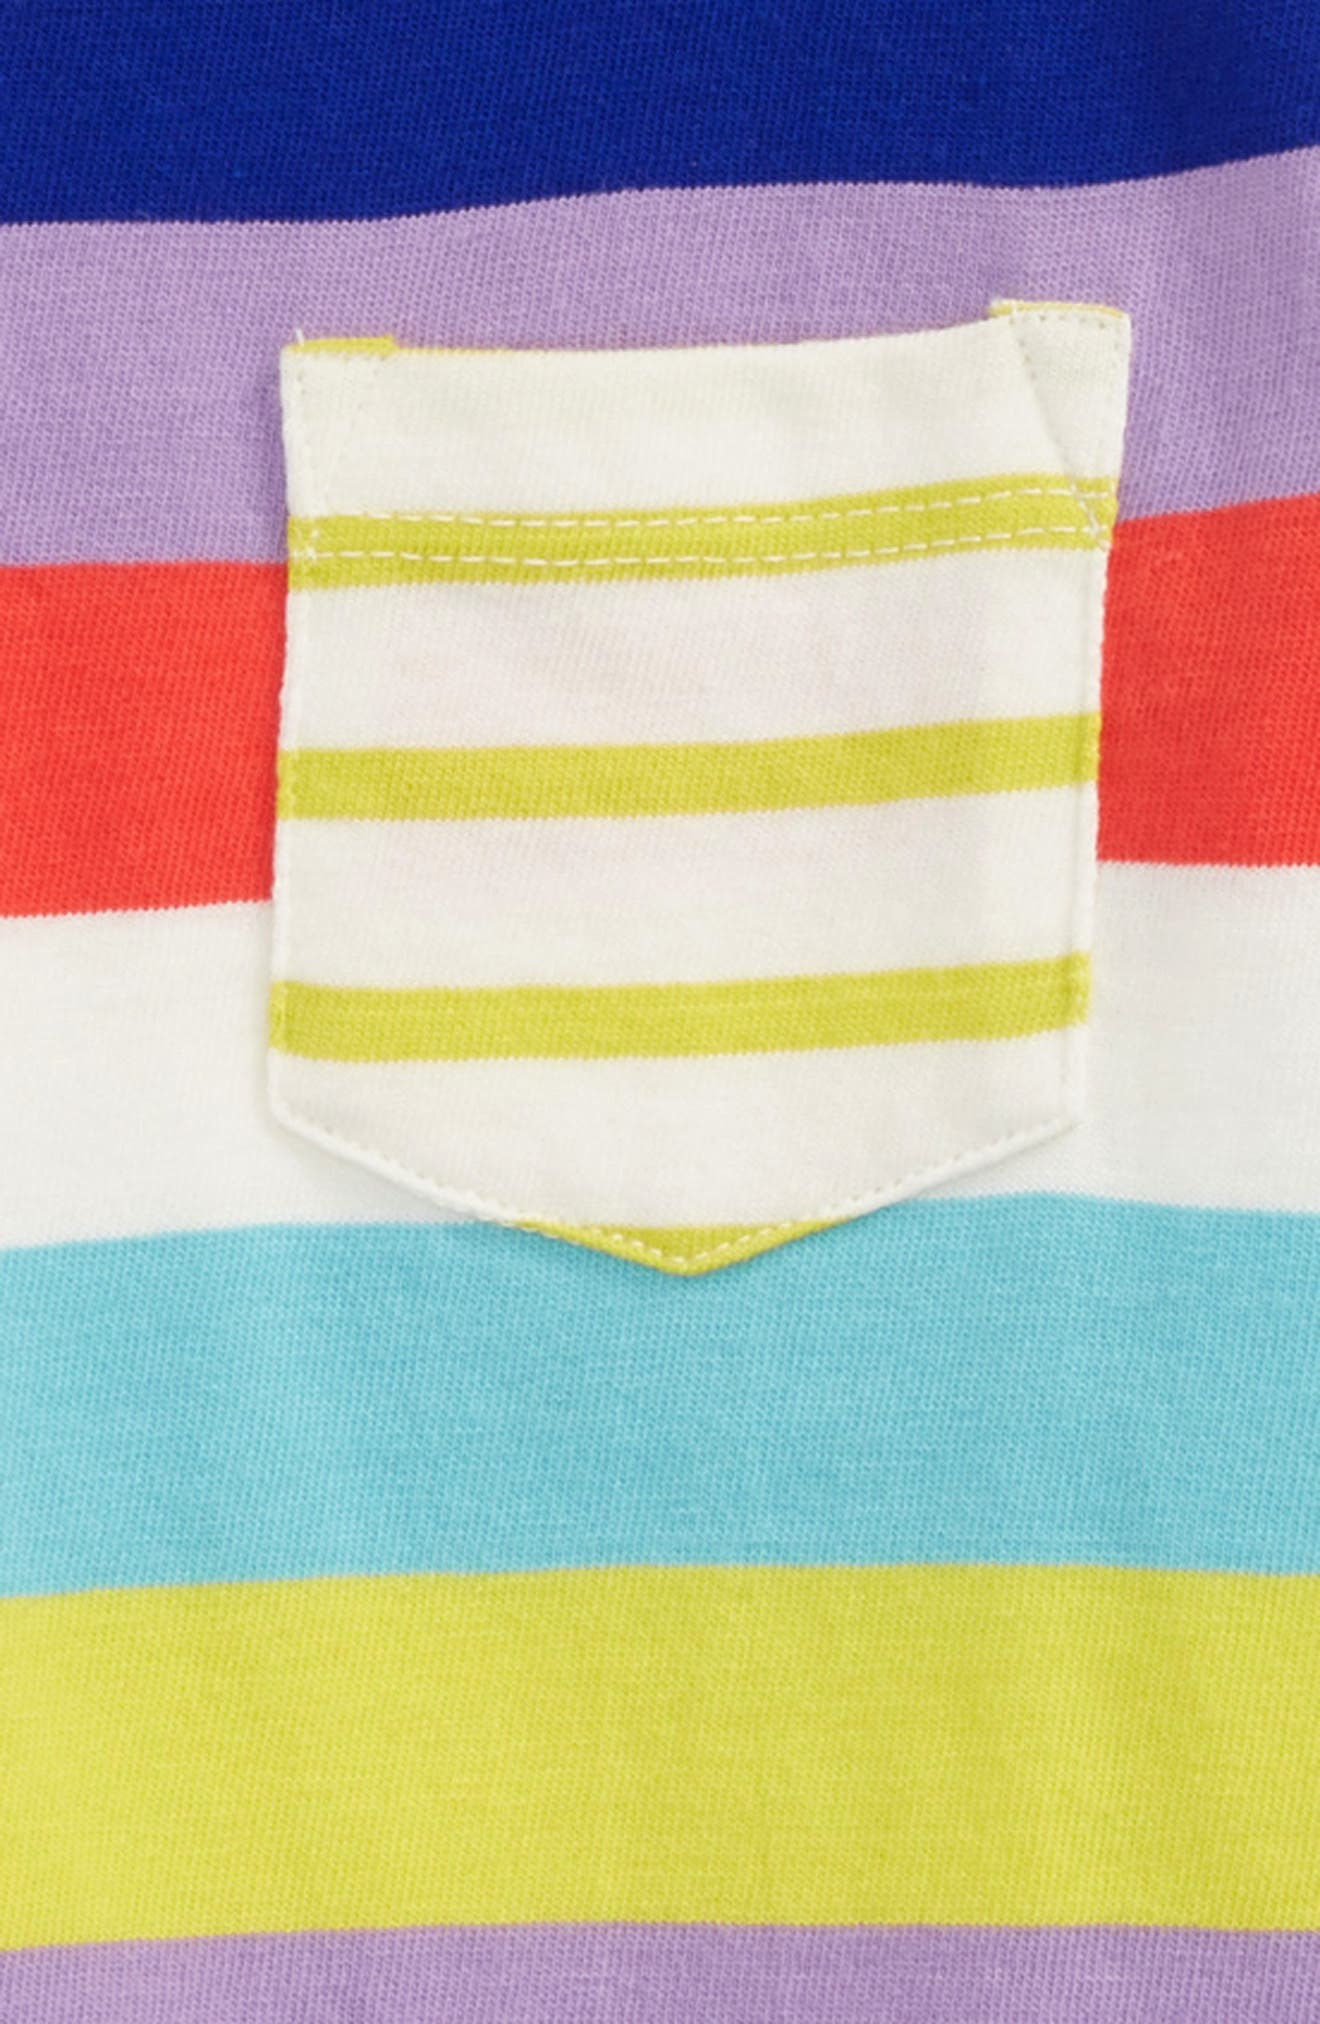 Summer Hotchpotch Tee,                             Alternate thumbnail 2, color,                             651